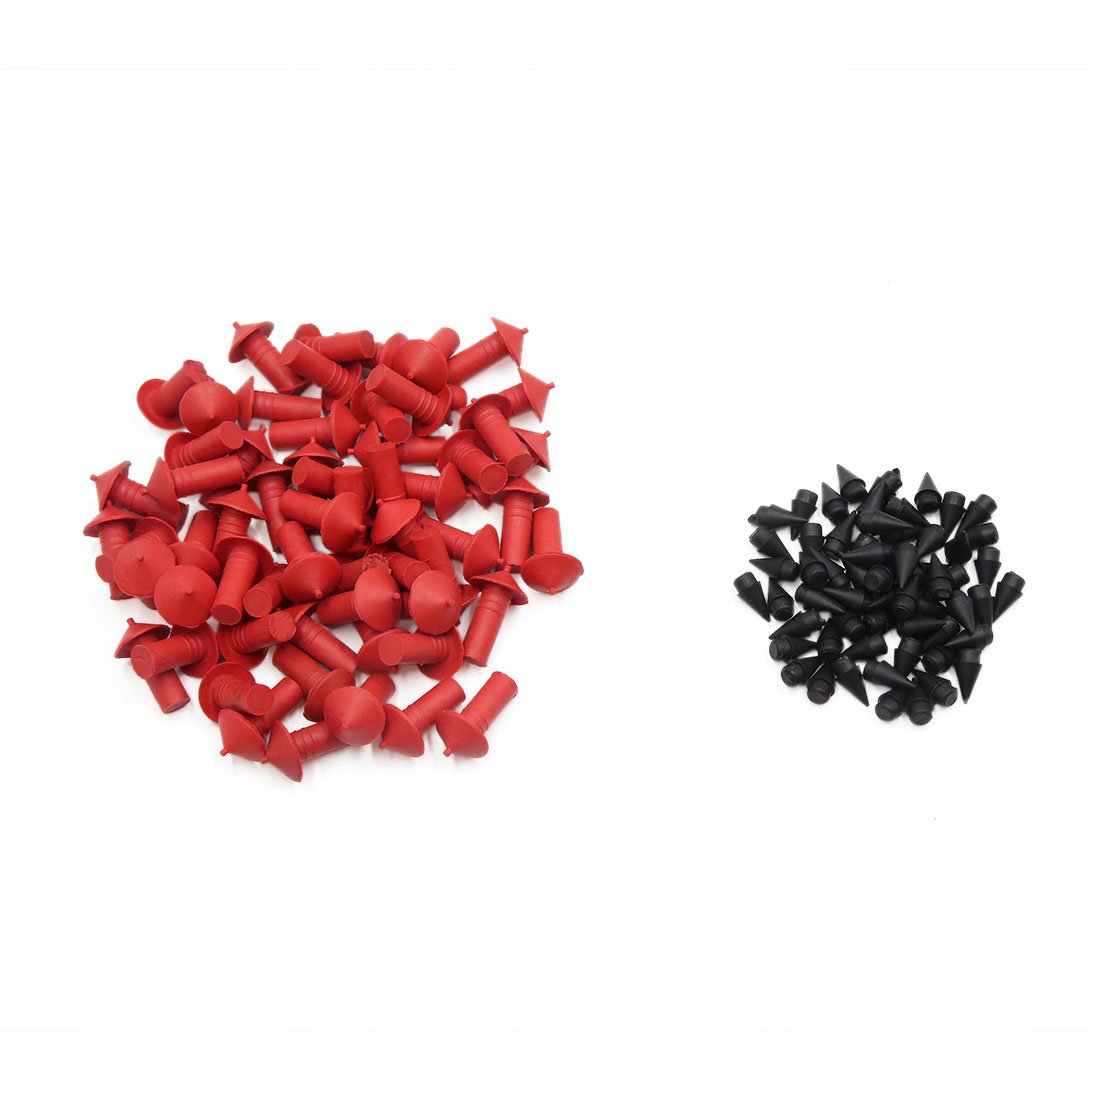 uxcell a17031300ux1135 120 Pcs 7mm Dia Mushroom Style Tubeless Tire Tyre Repair Insert Sockets for Car Pack